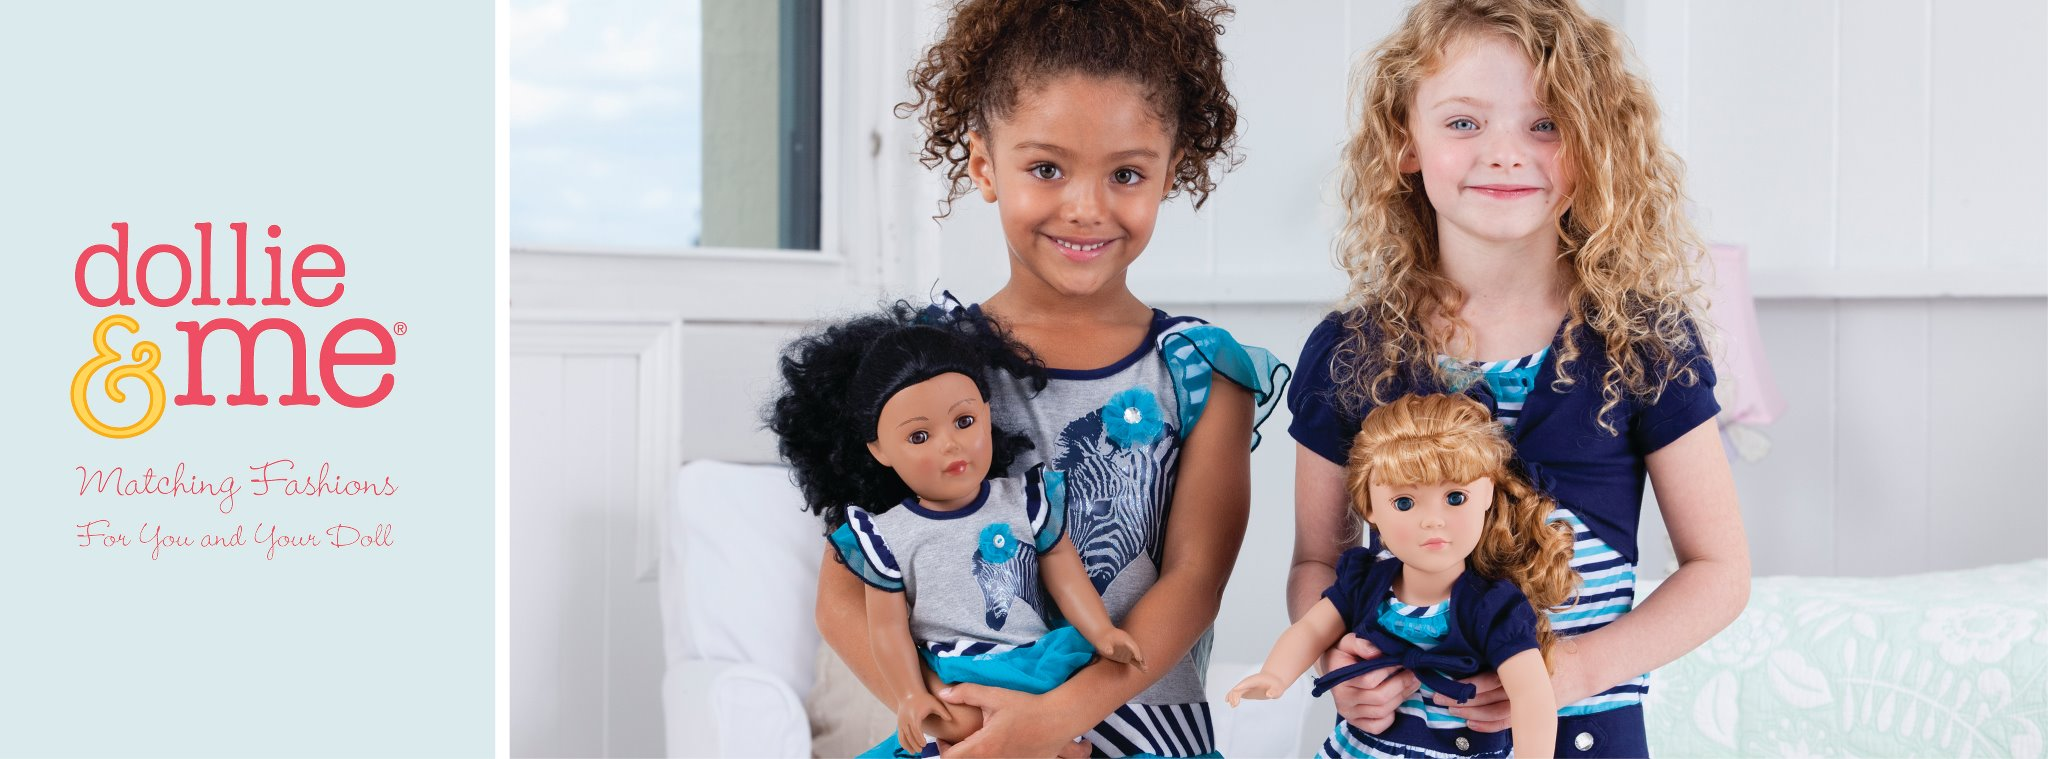 Matching clothes for little girls and their dolls.